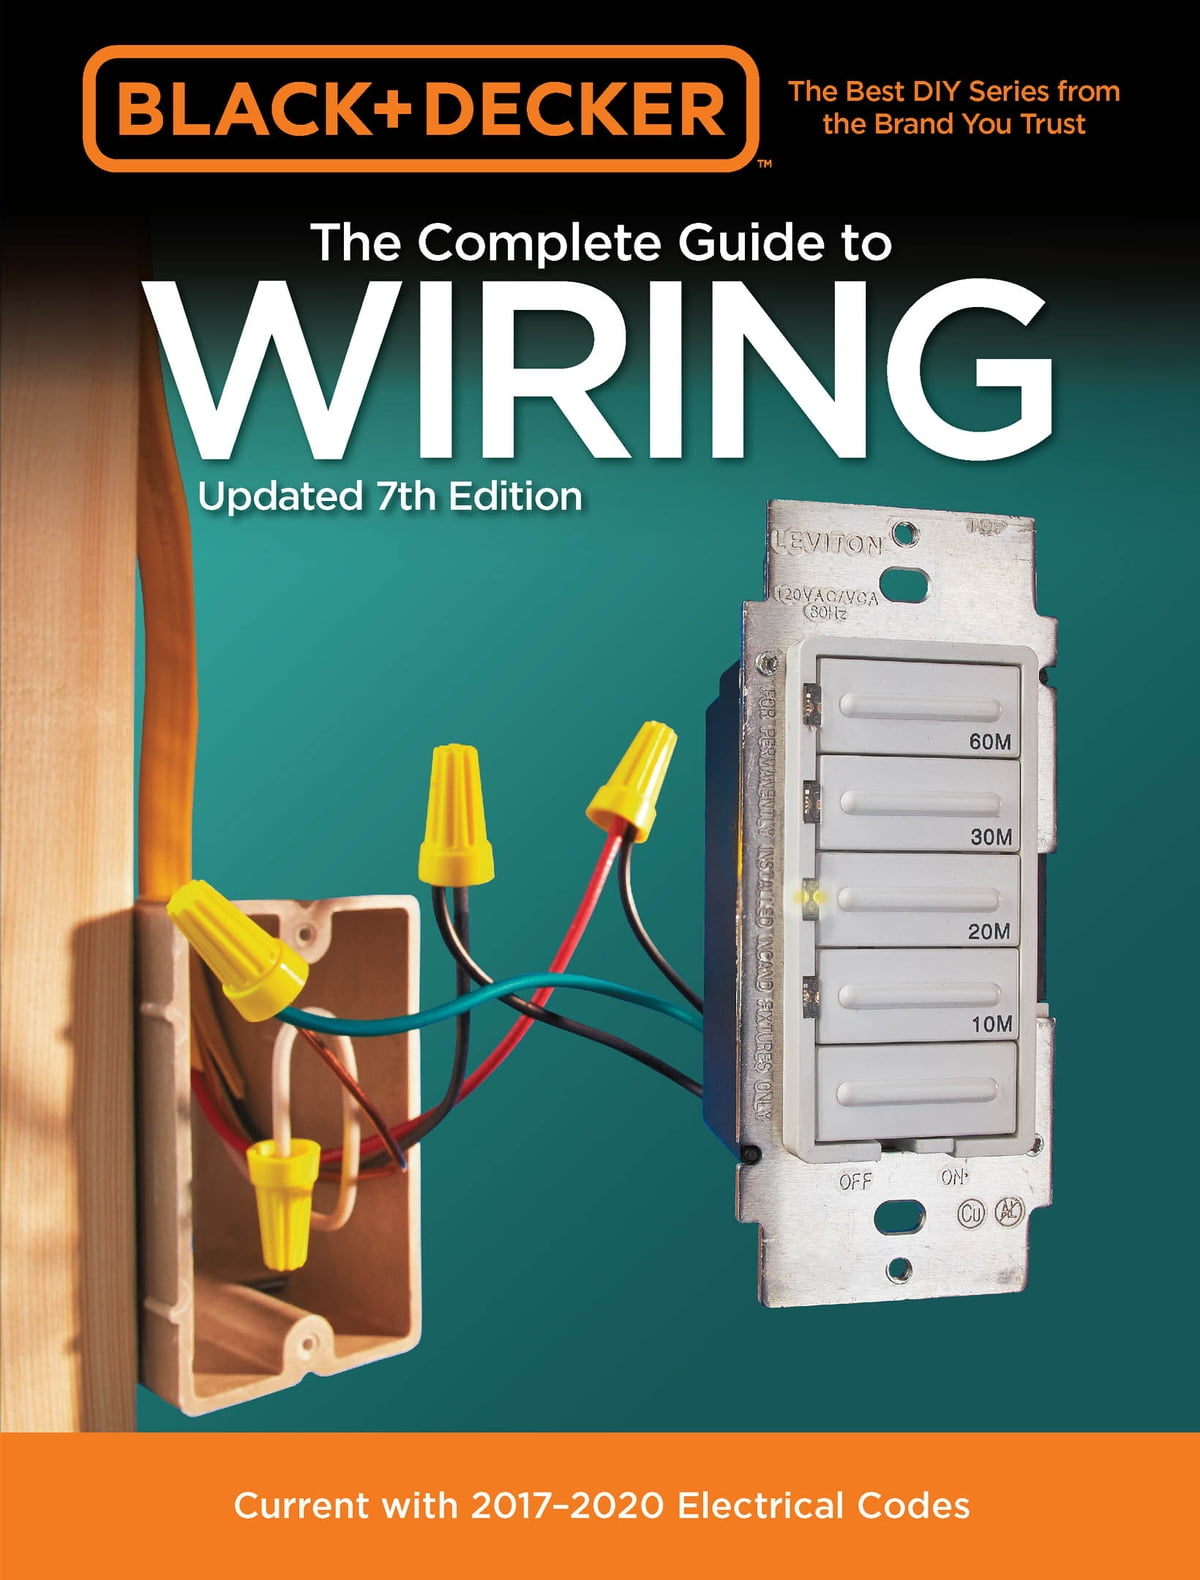 hight resolution of black decker the complete guide to wiring updated 7th edition ebook by editors of